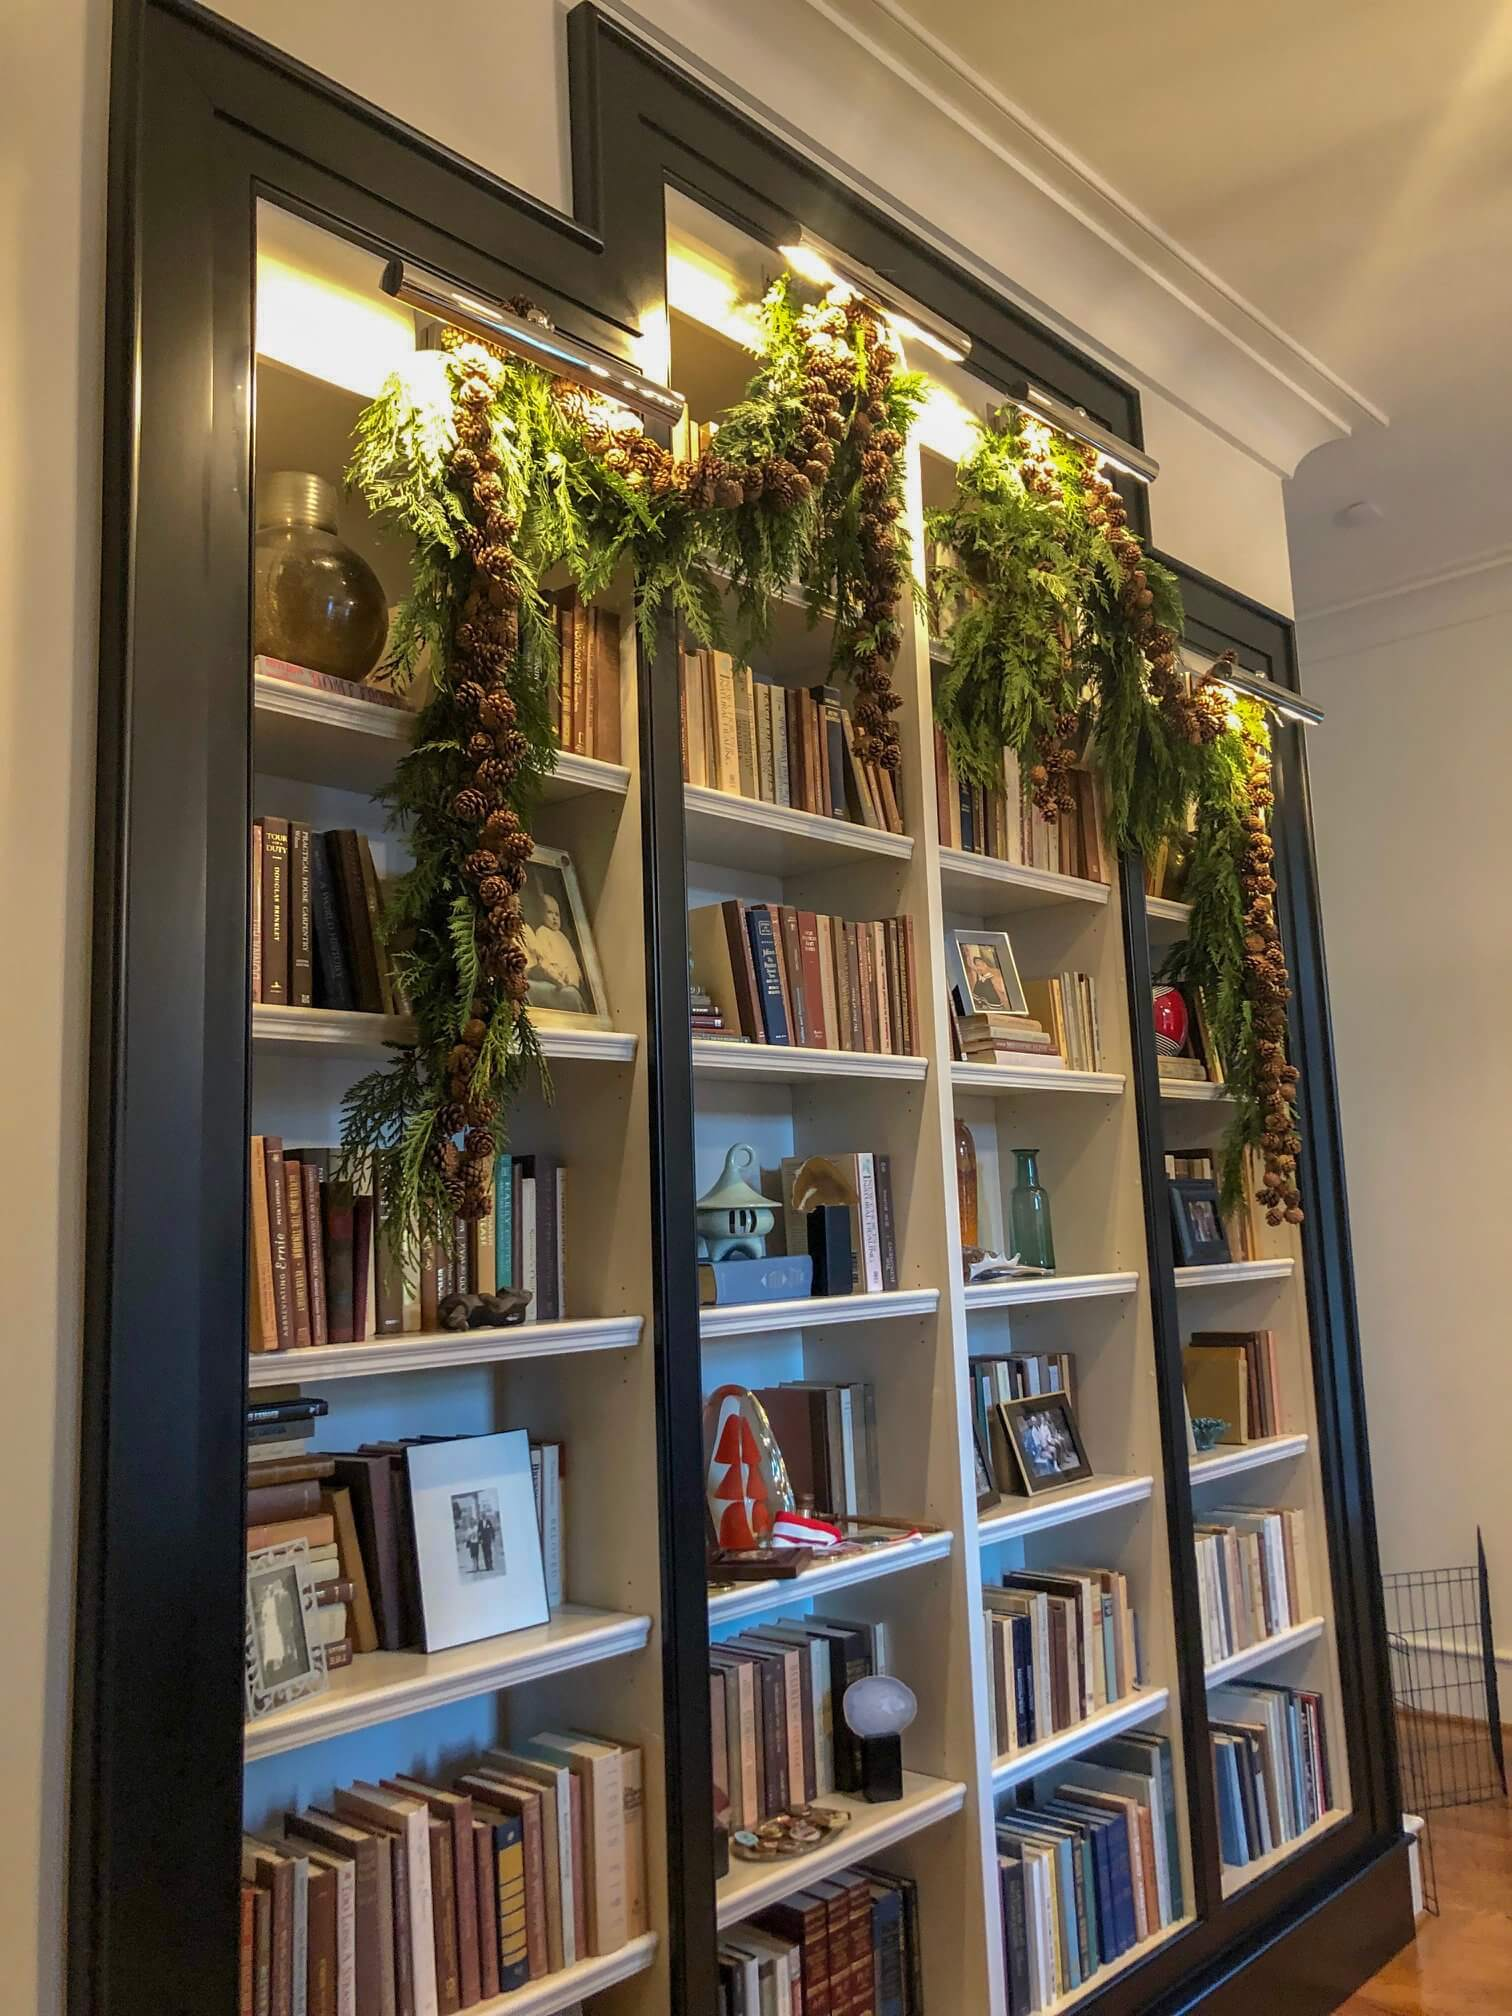 Residential holiday installation with pinecones and greenery